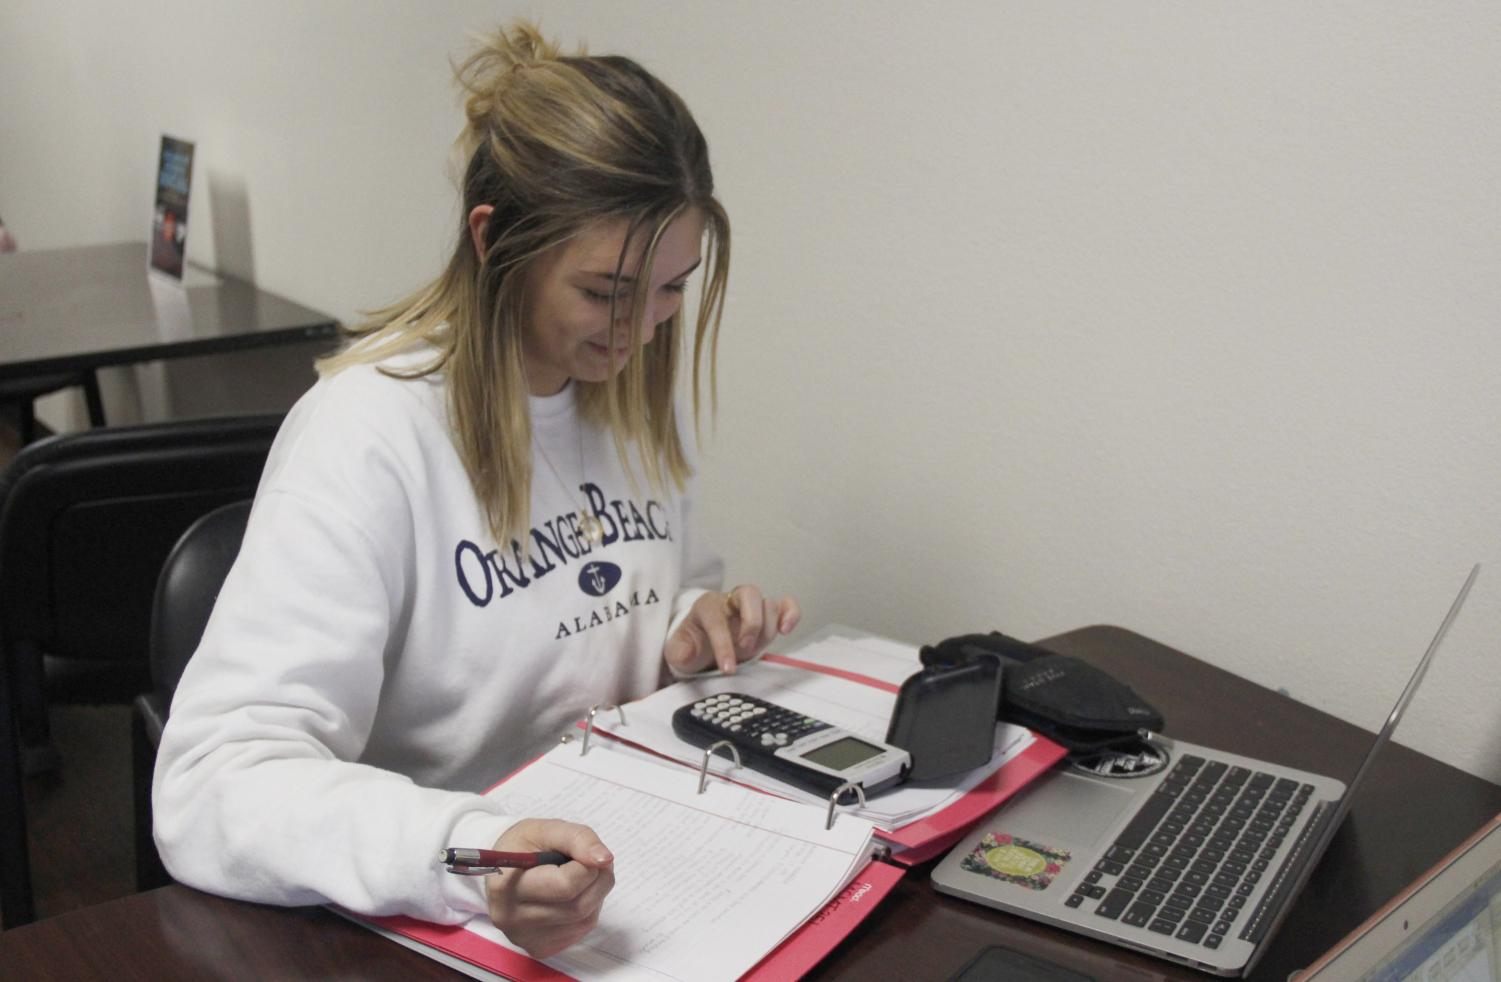 Alainna Haddad, a junior finance major, studies at the College of Business. The Department of Accounting and Finance offer opportunities for students to prepare for in-demand careers in diverse areas.